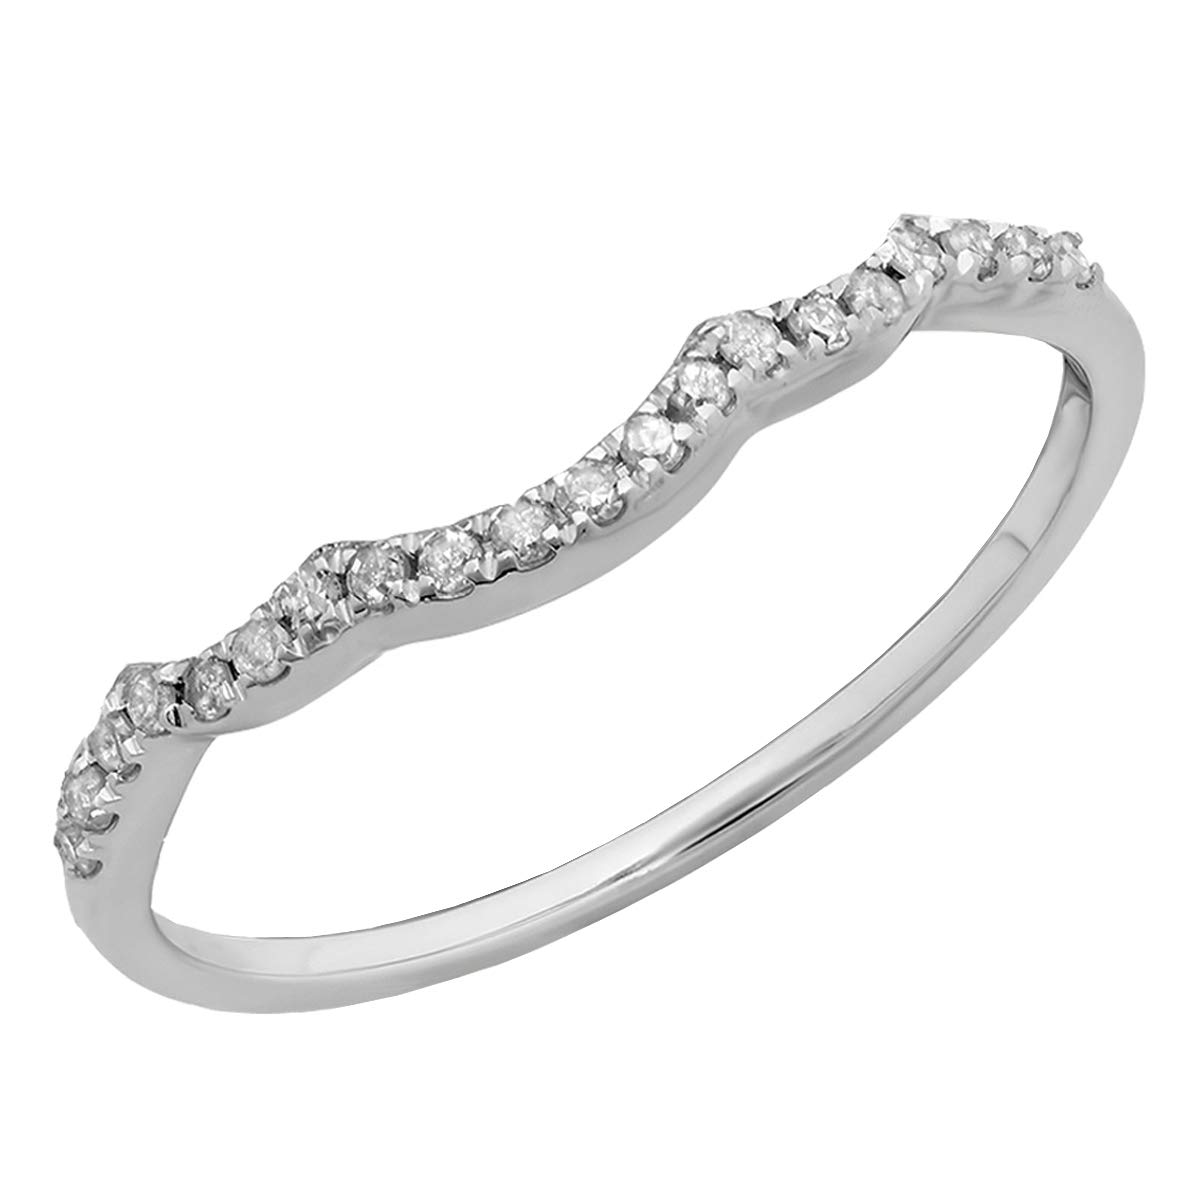 0.12 Carat (cttw) Round White Diamond Ladies Stackable Wedding Contour Guard Band, 10K White Gold, Size 7 by Dazzlingrock Collection